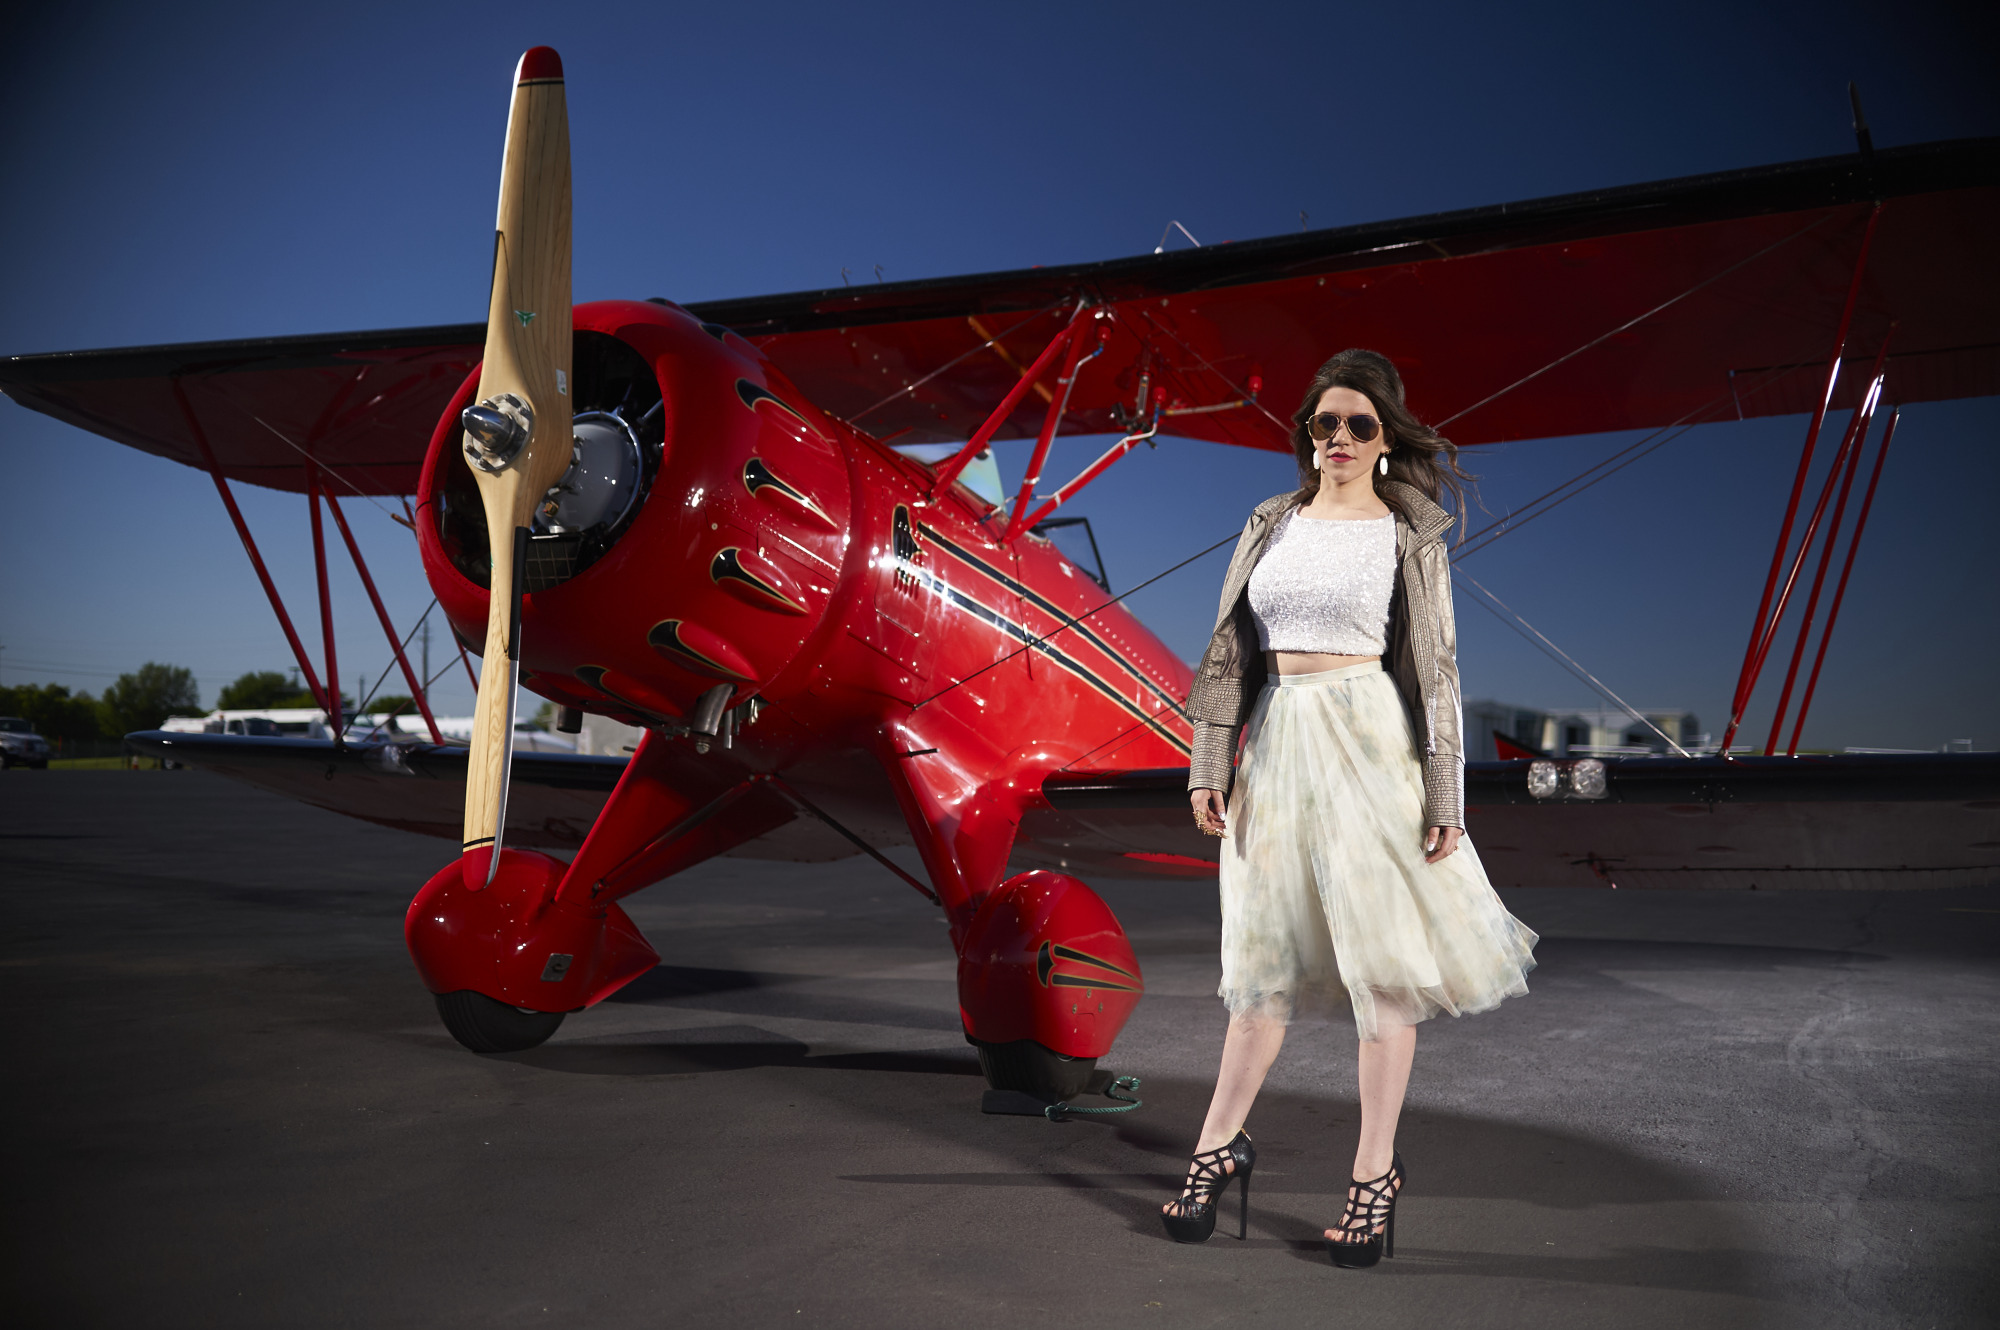 Uptown in a Biplane - Commercial Lifestyle Photoshoot